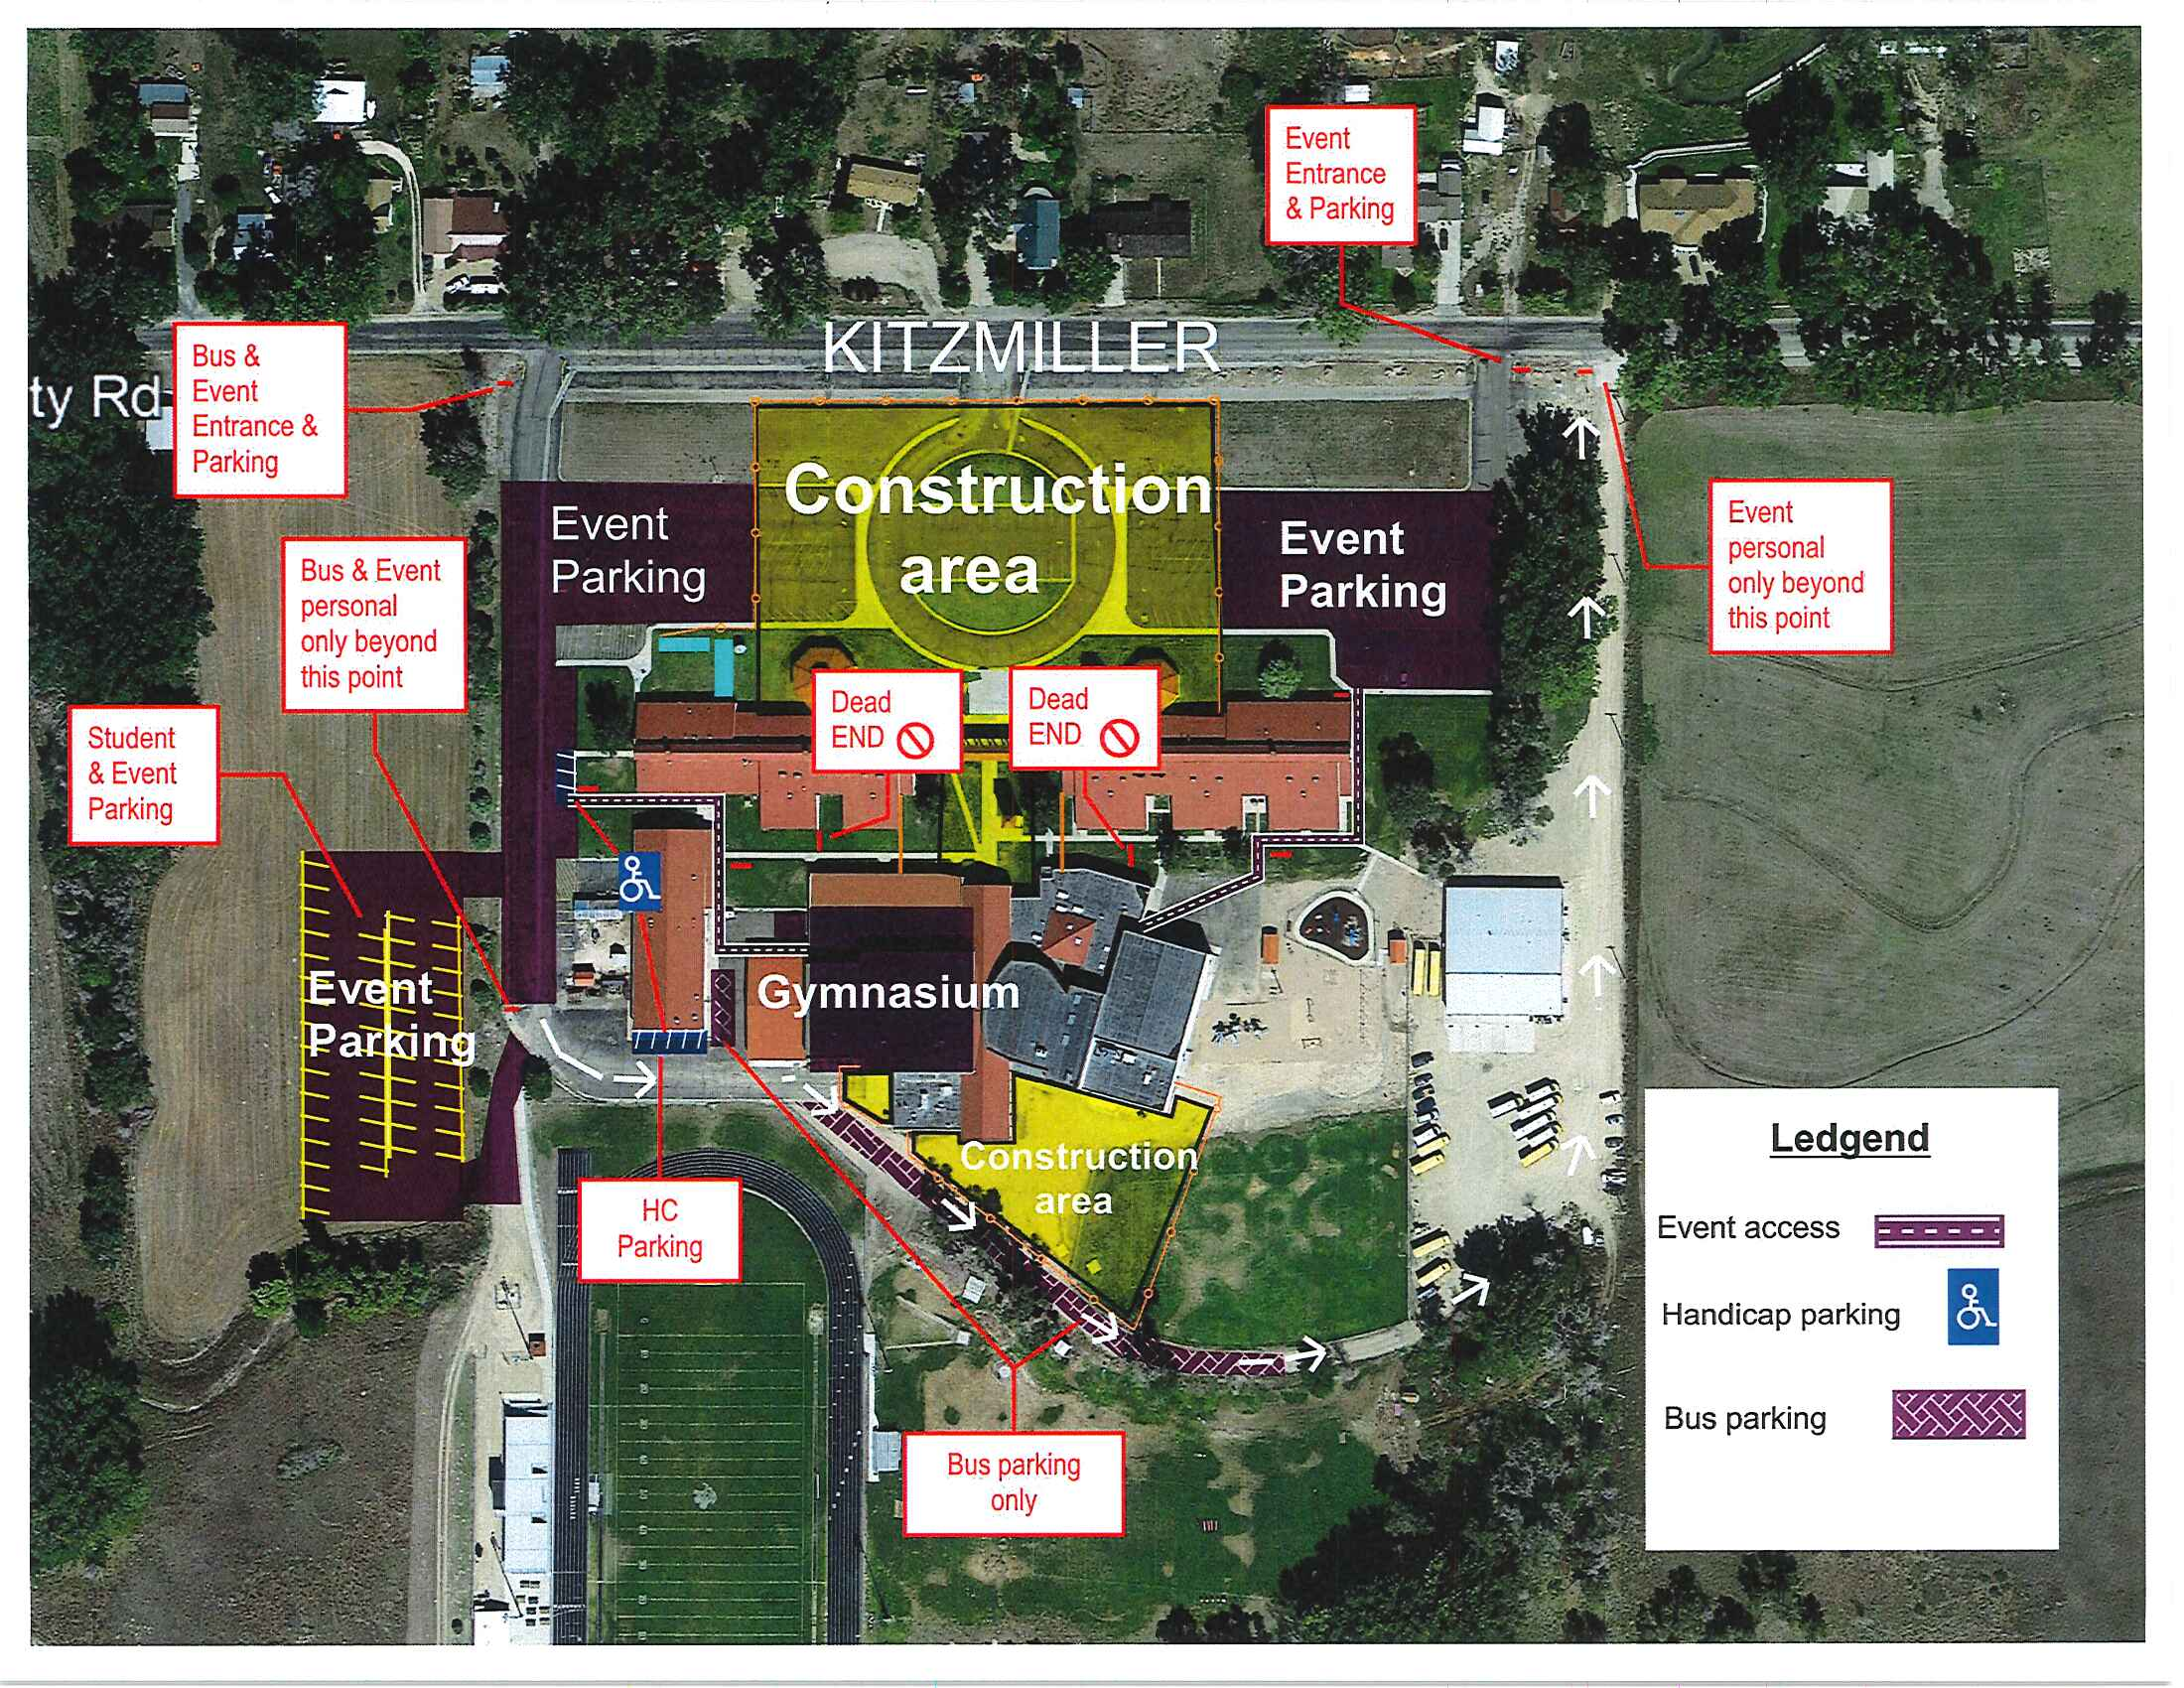 Photo of the school's ground and pointing towards where the construction area is taking place.